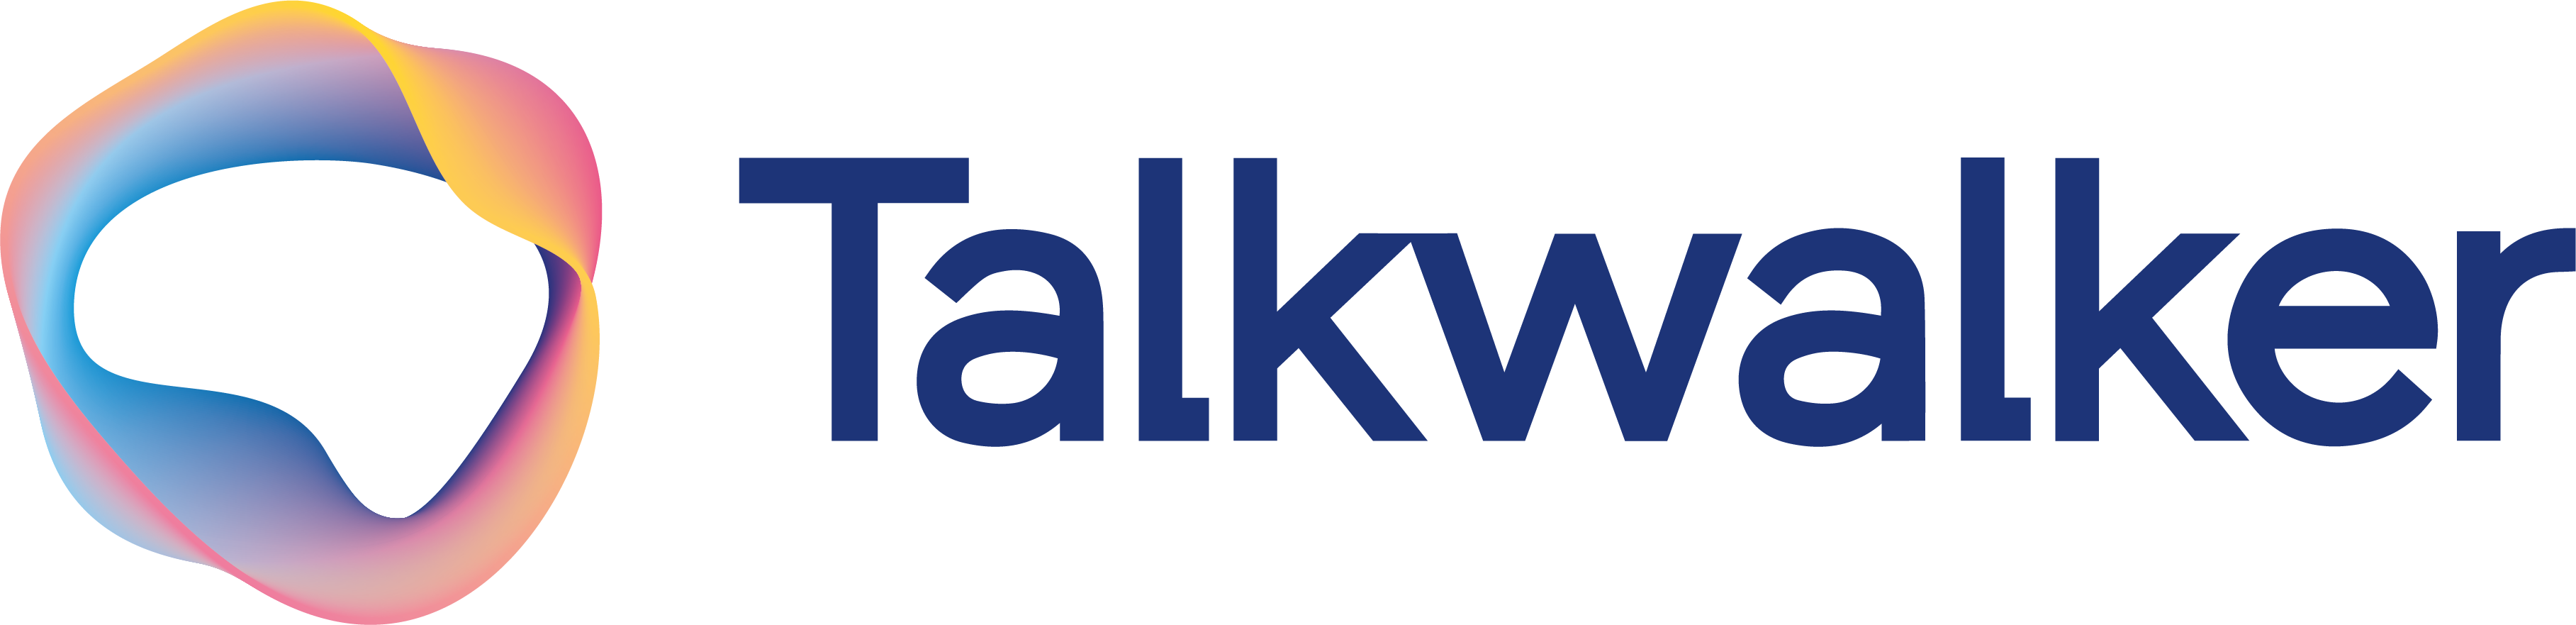 Talkwalker Logo_Full_Blue-1